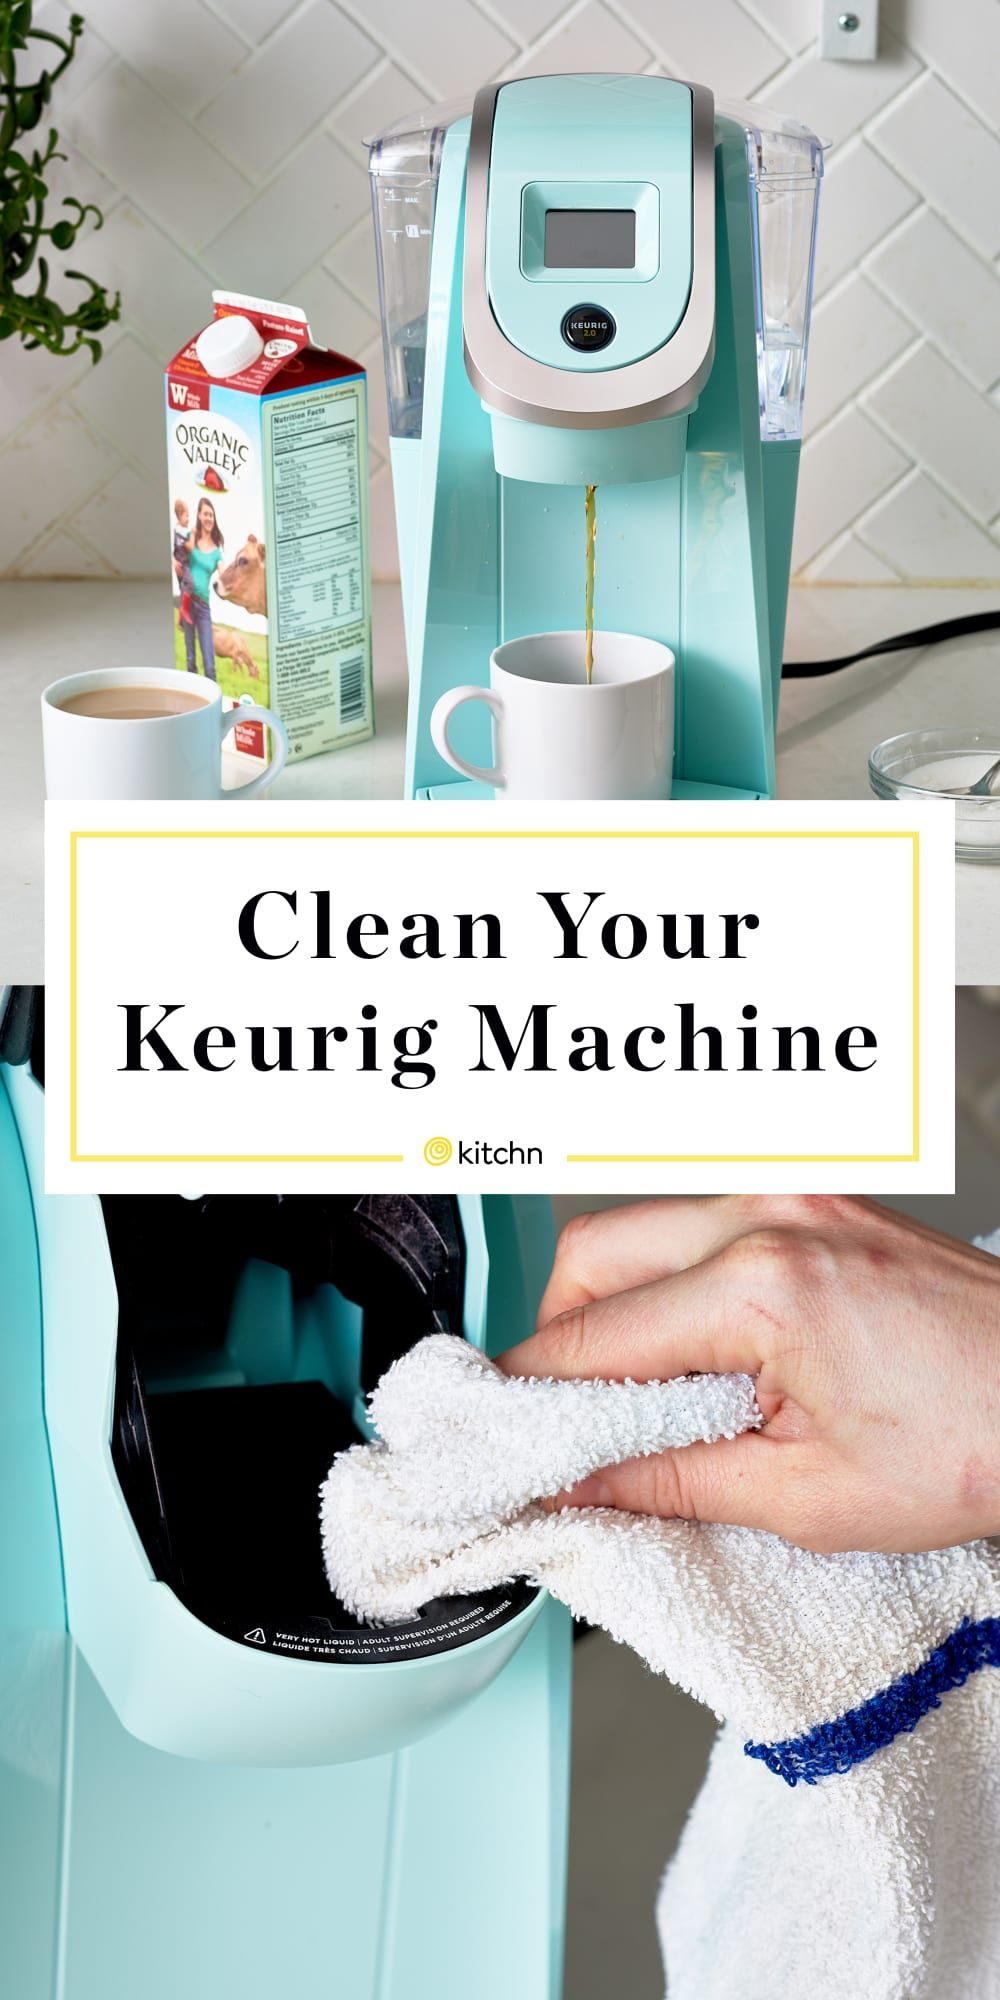 How To Clean a Keurig Coffee Machine Keurig cleaning